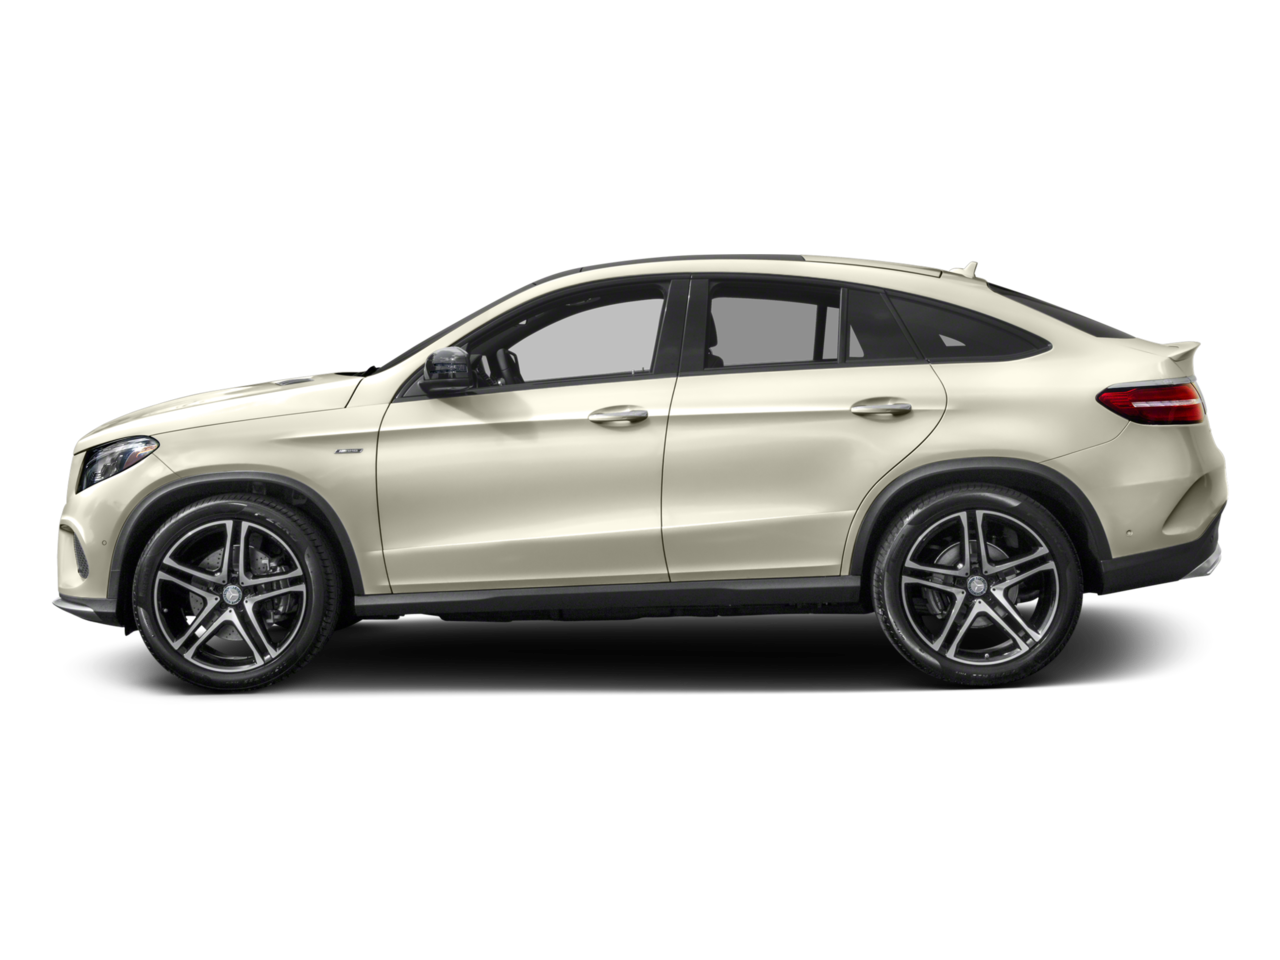 2016 Mercedes-Benz 4MATIC 4dr GLE 450 AMG Cpe